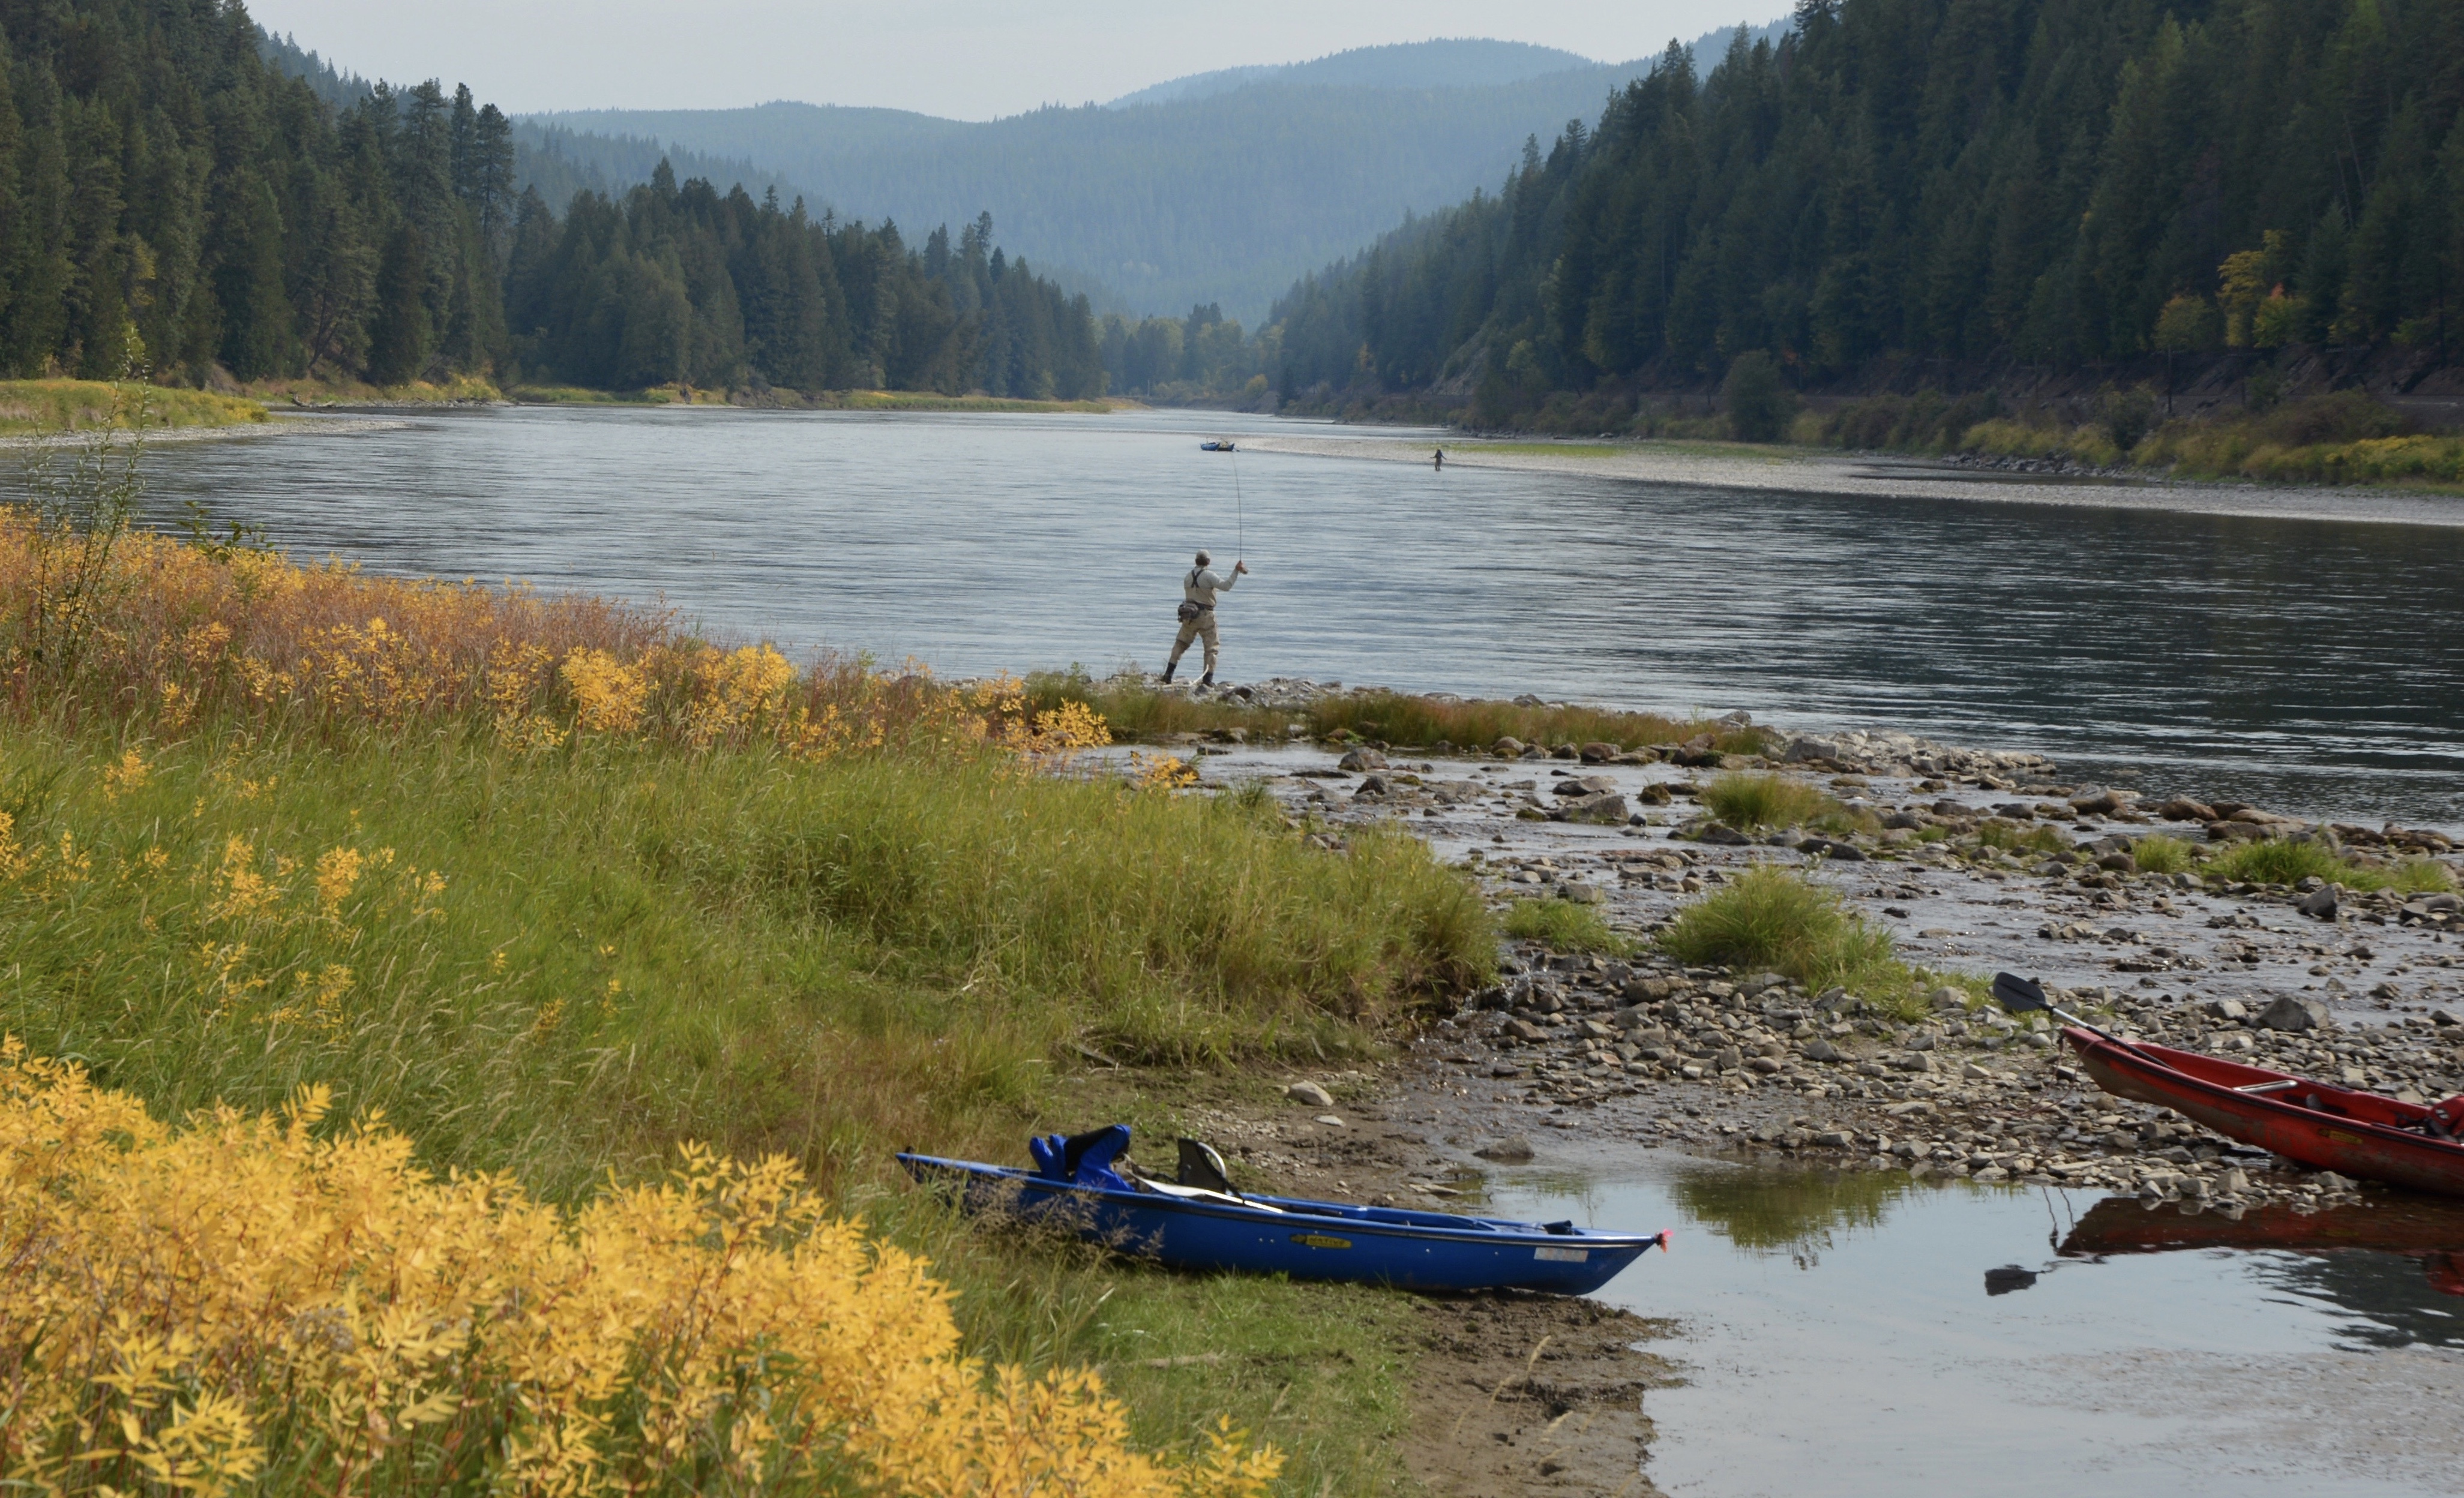 Fall favorite floating and fishing the kootenai river for Fishing for floaters game